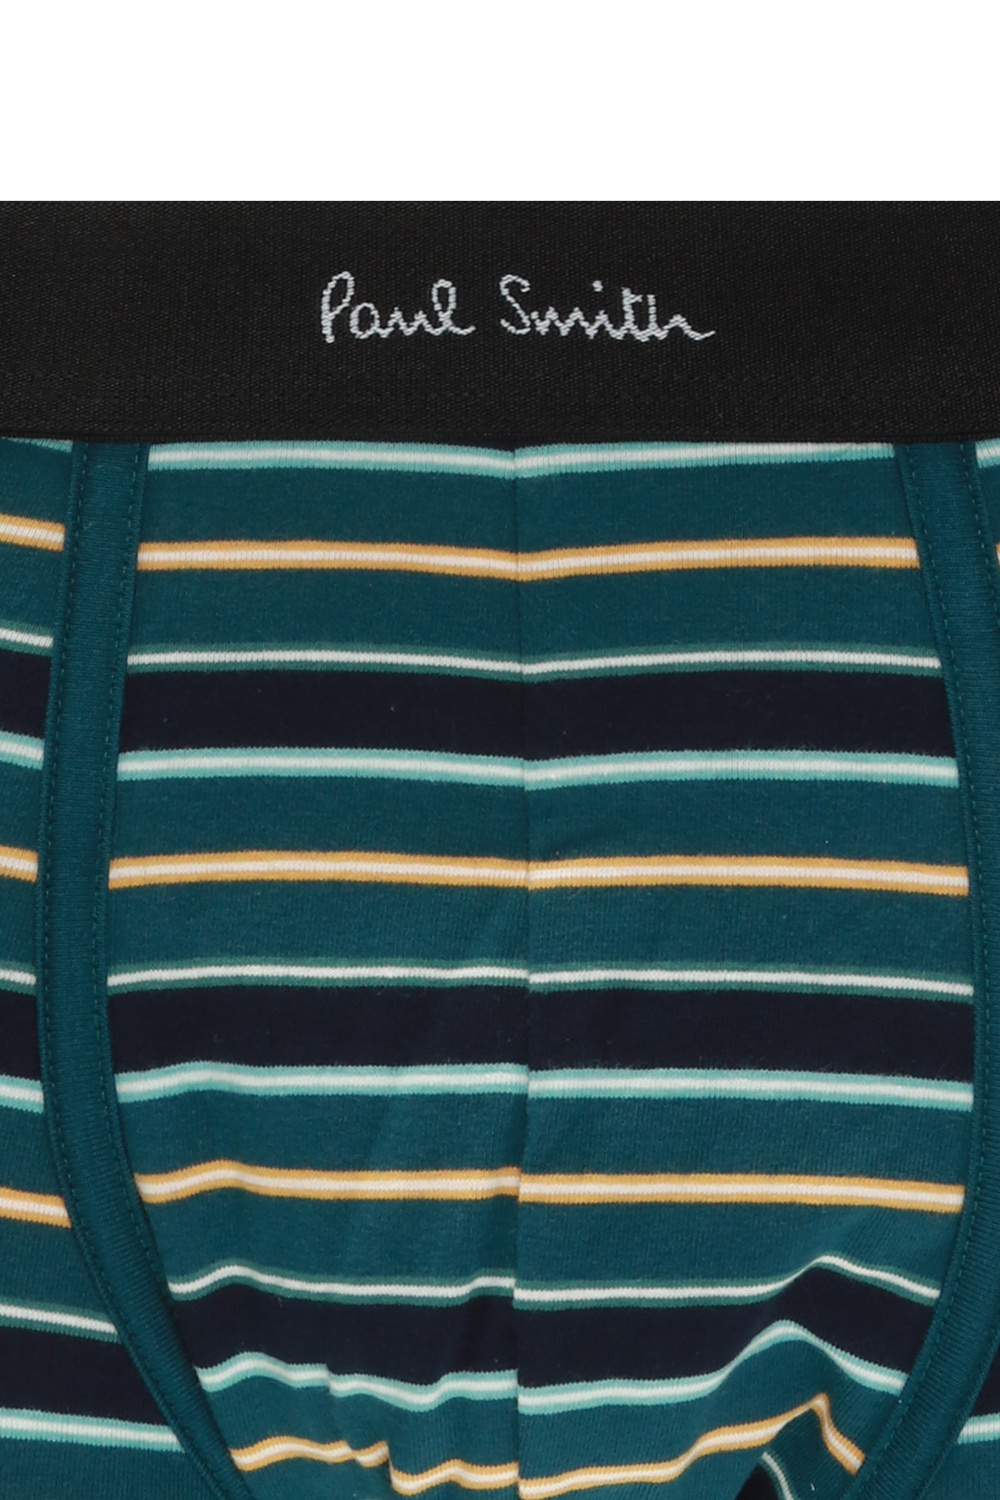 Paul Smith Patterned boxers with logo